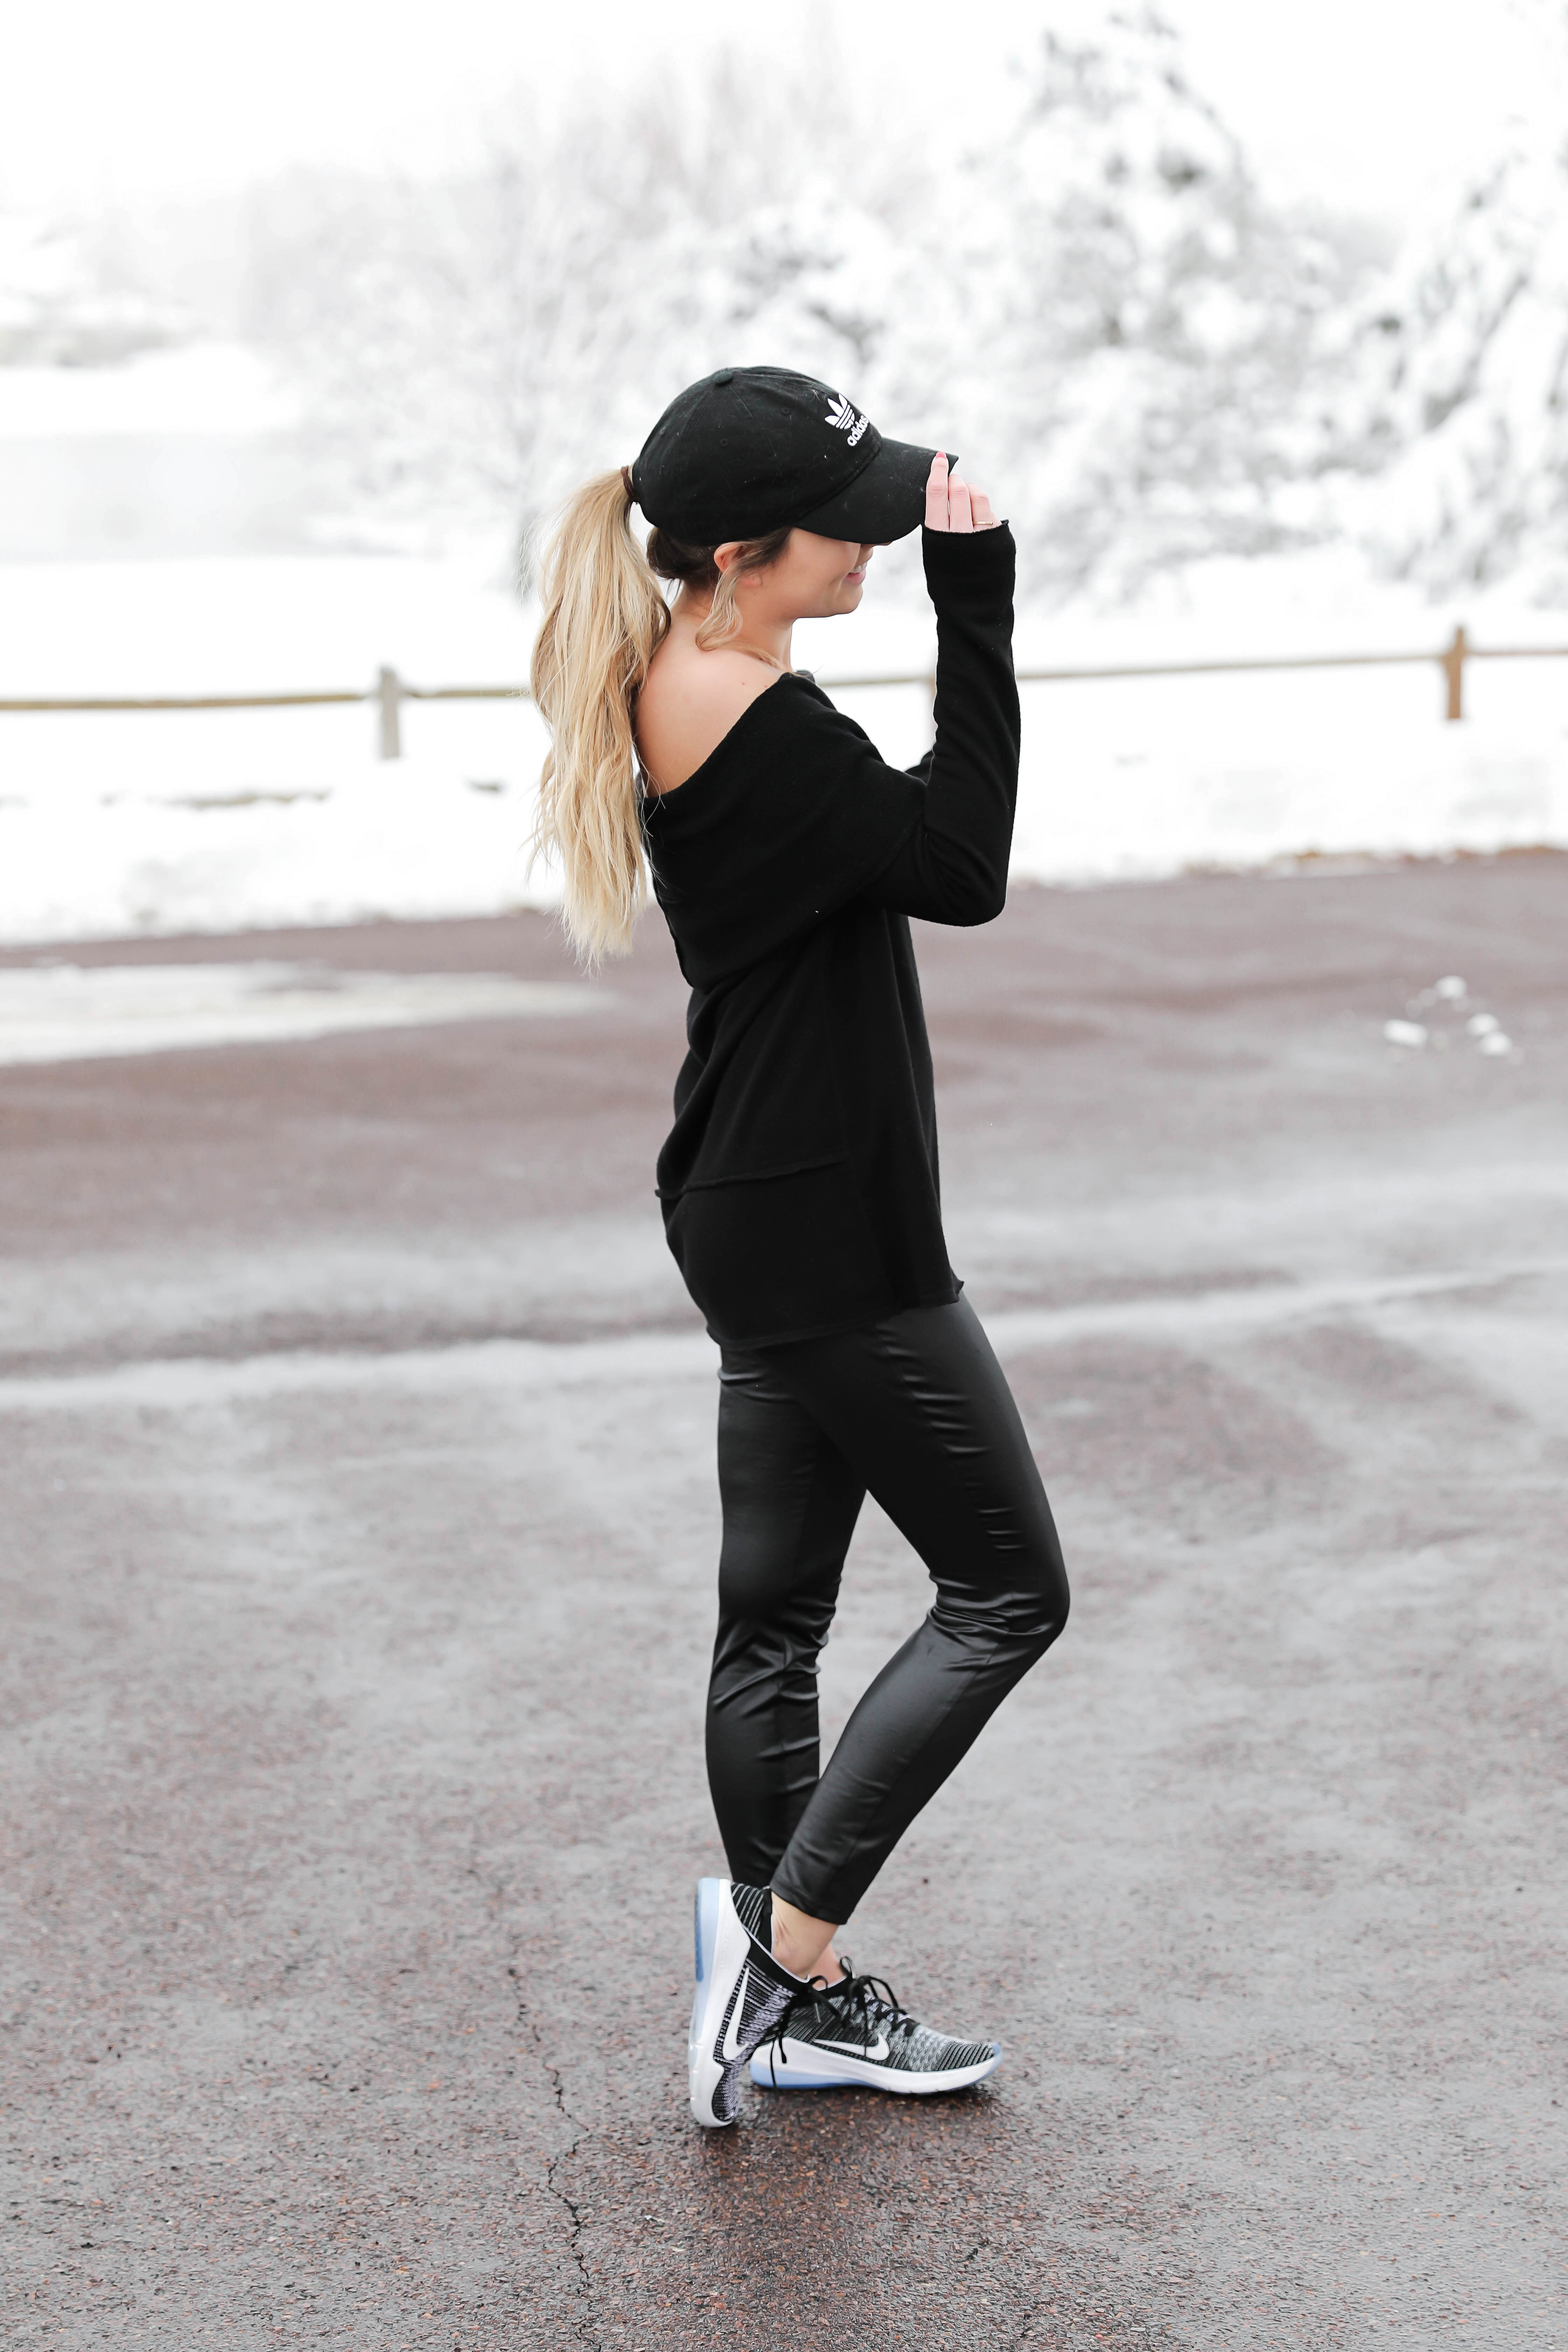 The best faux leather leggings! Comparing three different brands of faux leather pants including spanx, topshop, and target! Cute ideas for causal winter outfits and how to style leather pants! Details on fashion blog daily dose of charm by lauren lindmark